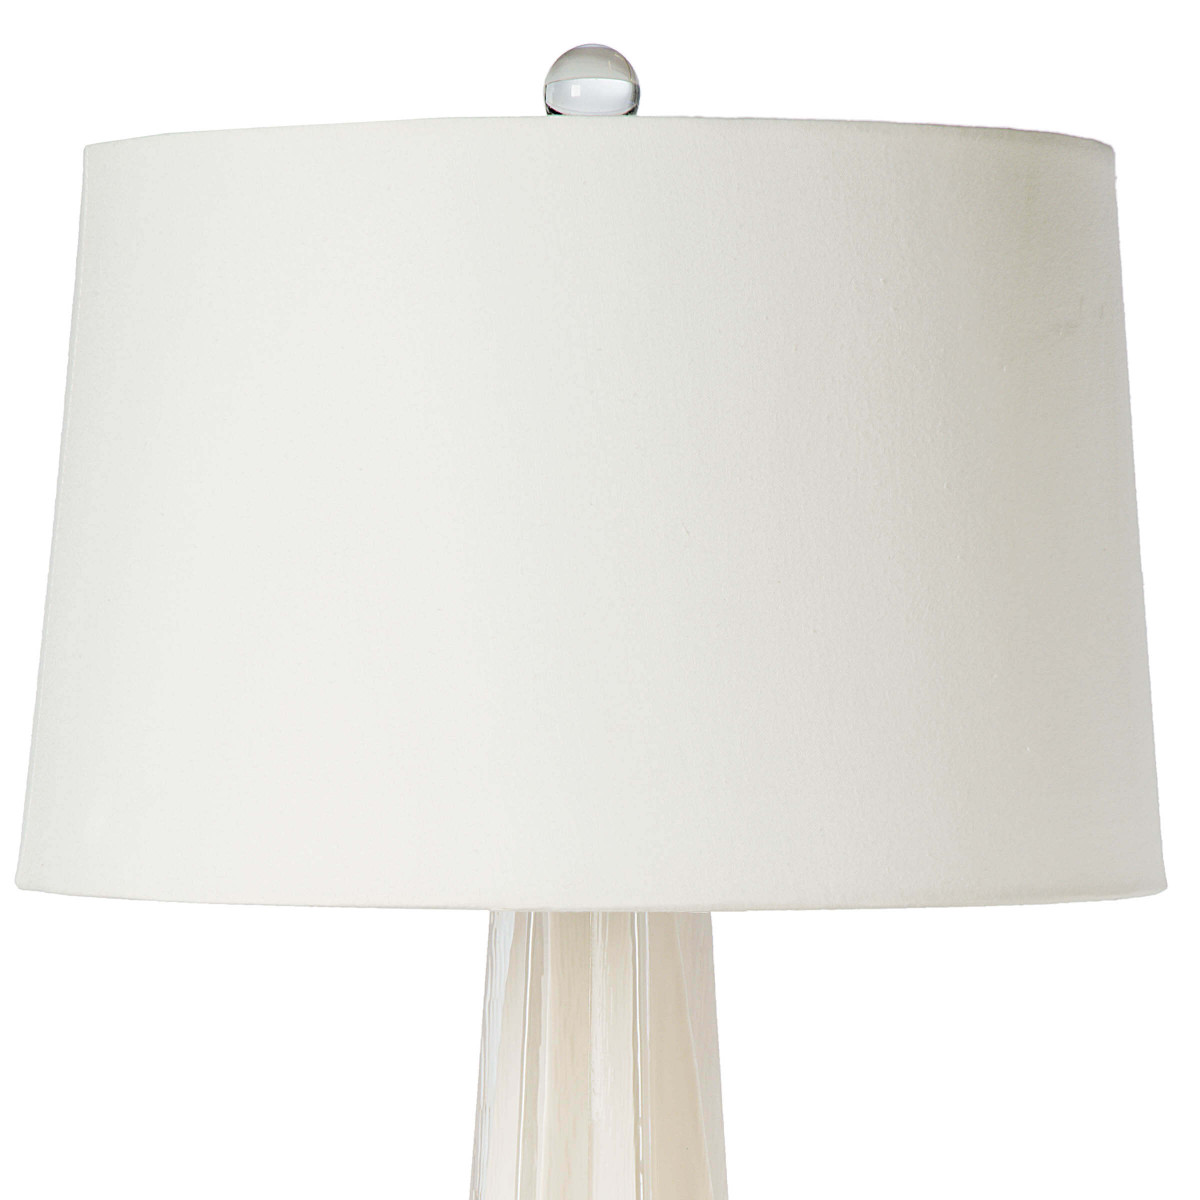 Comet Table Lamp | White Glass